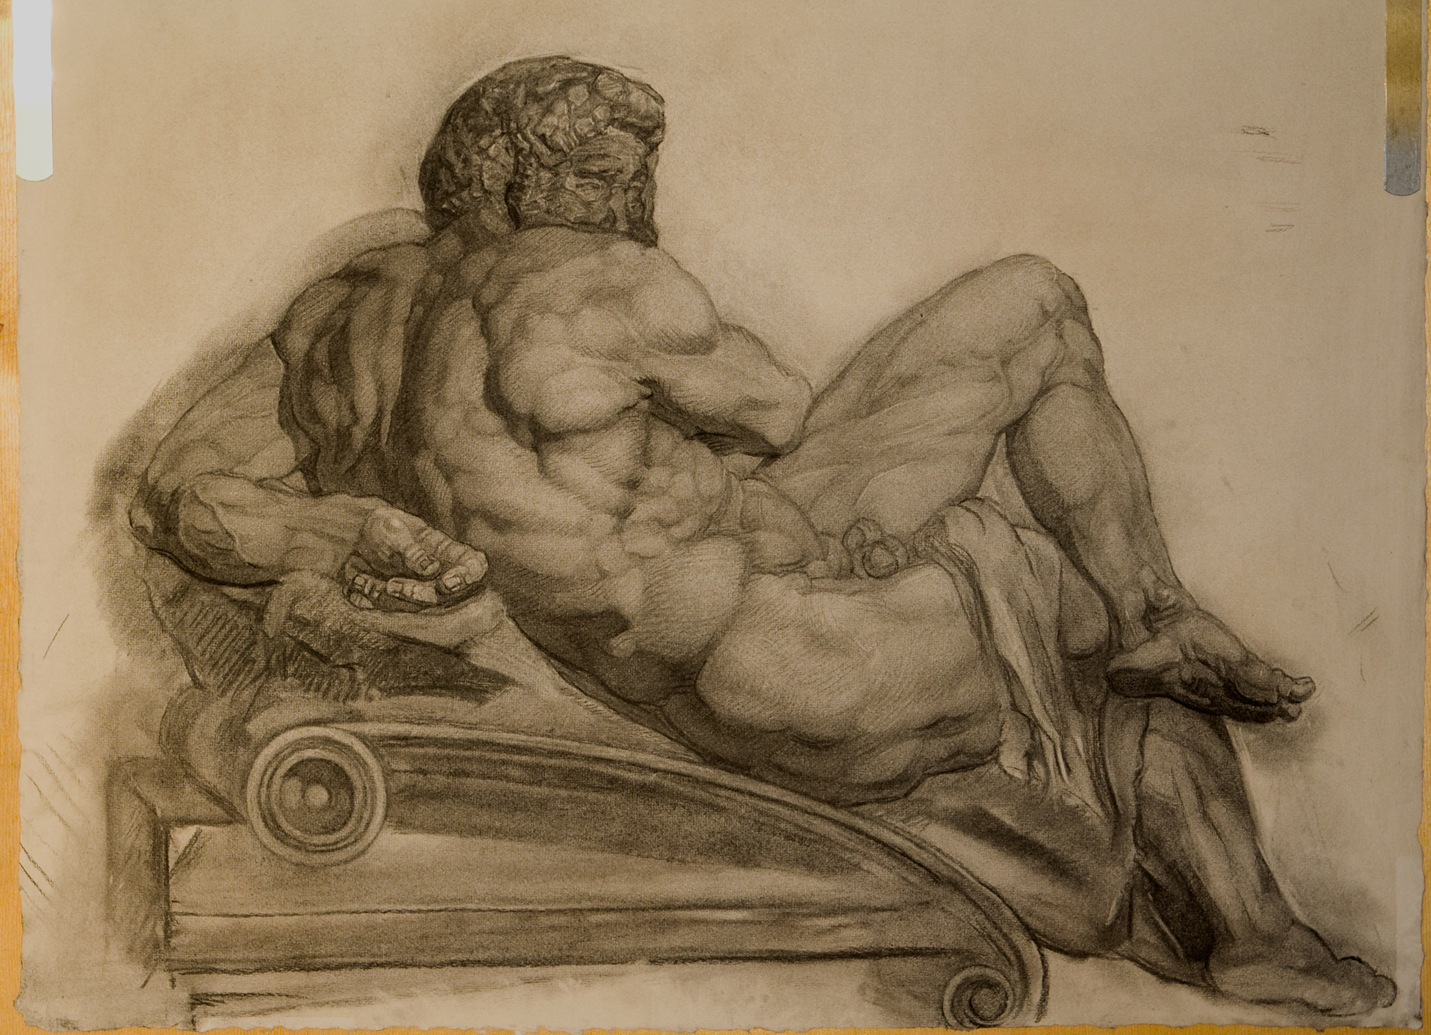 Day figure by Michelangelo, ca. 1526-1531, from the Giuliano de' Medici tomb in the Medici Chapel, Florence